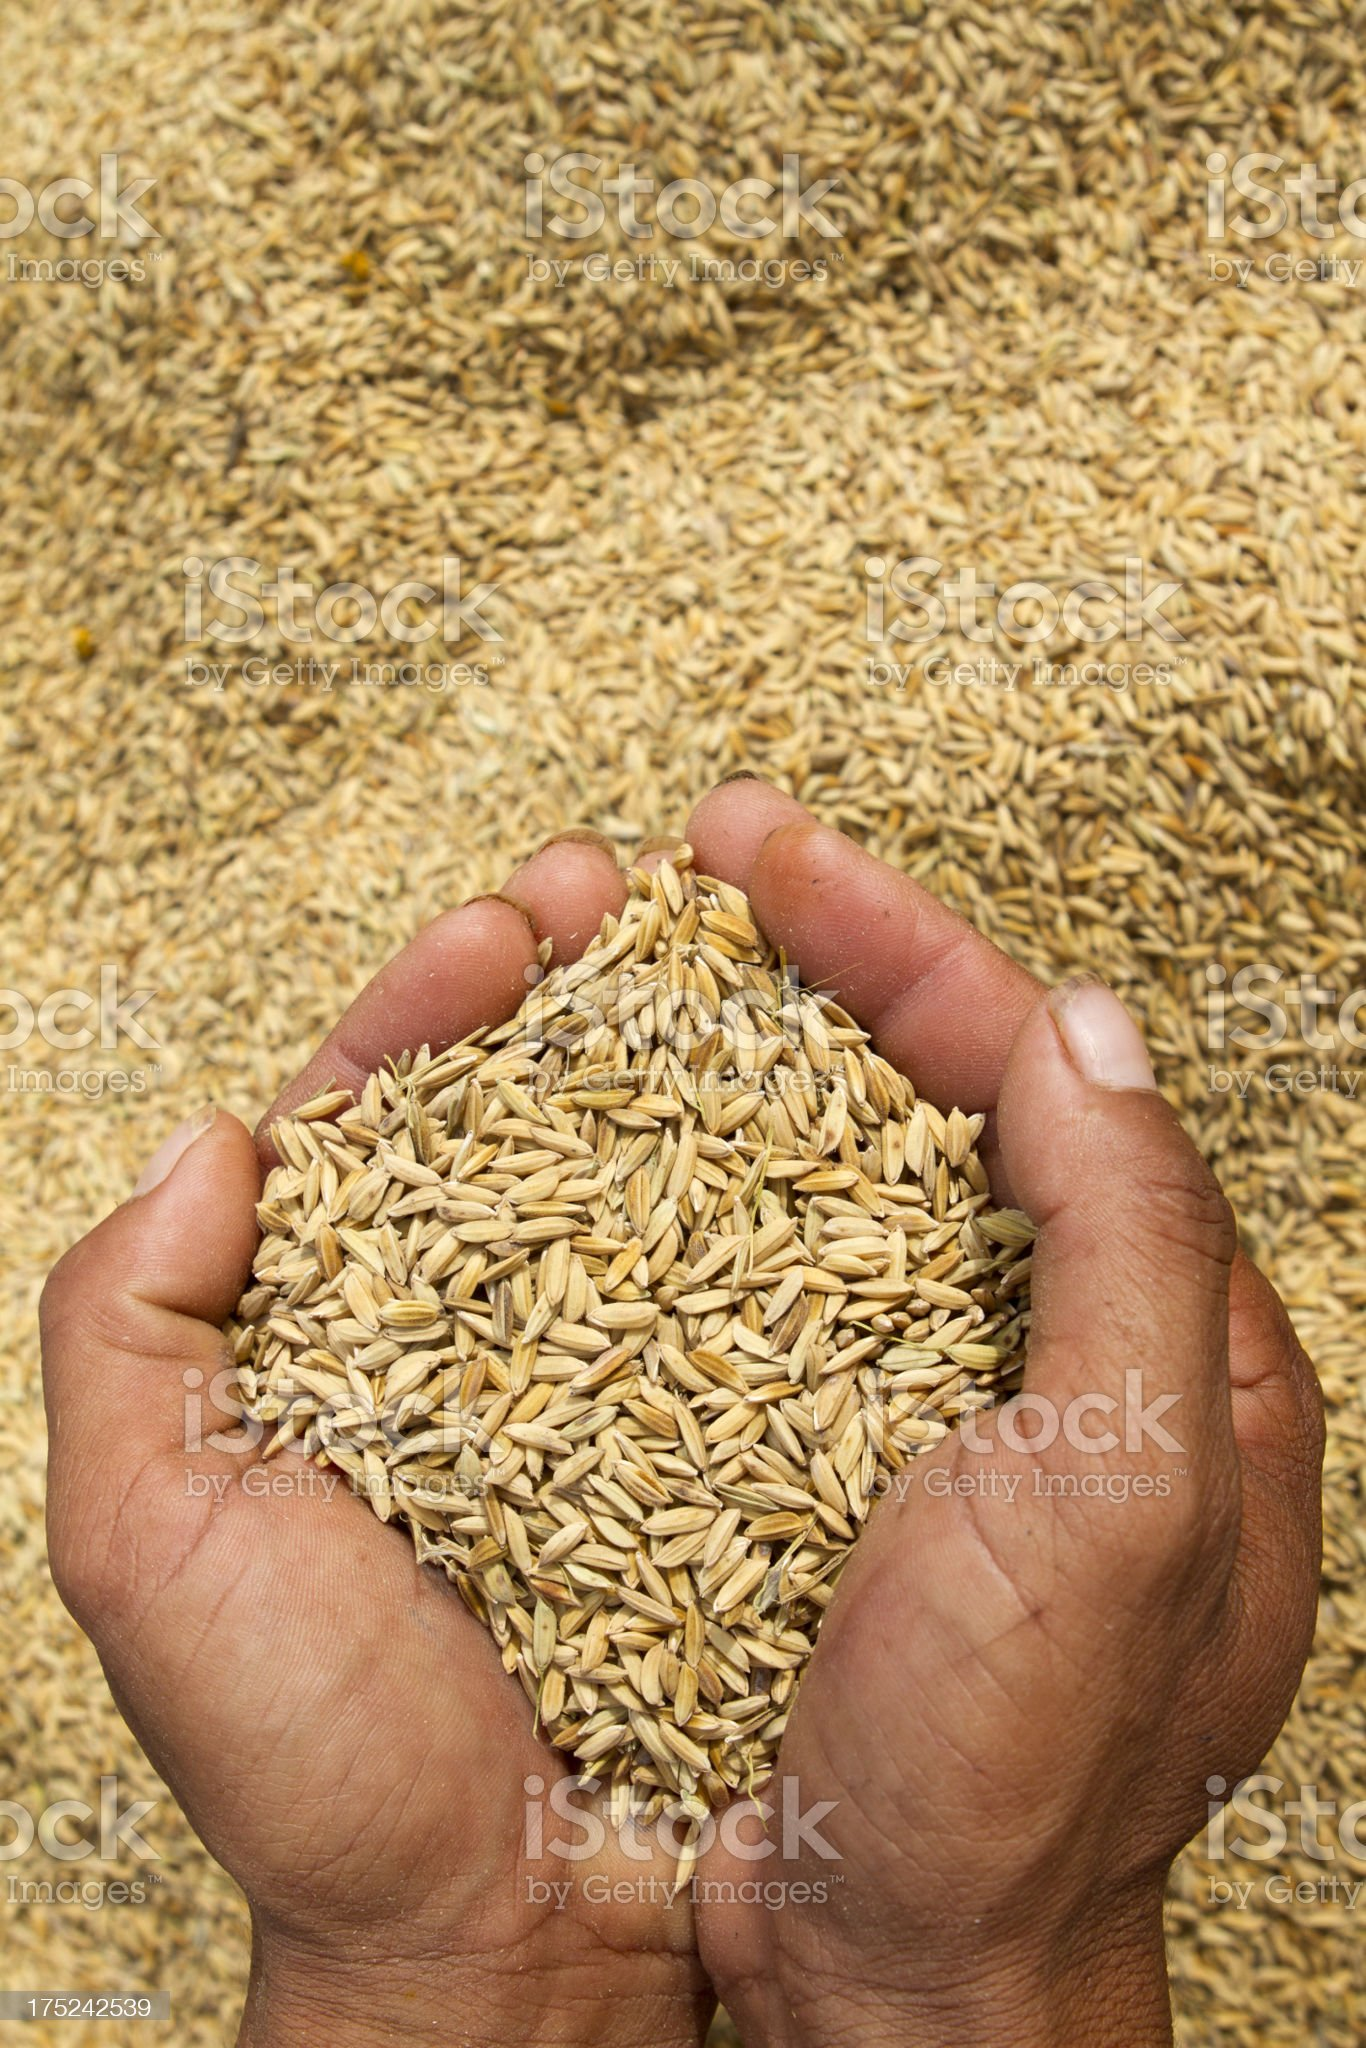 Holding rice crop in hands royalty-free stock photo